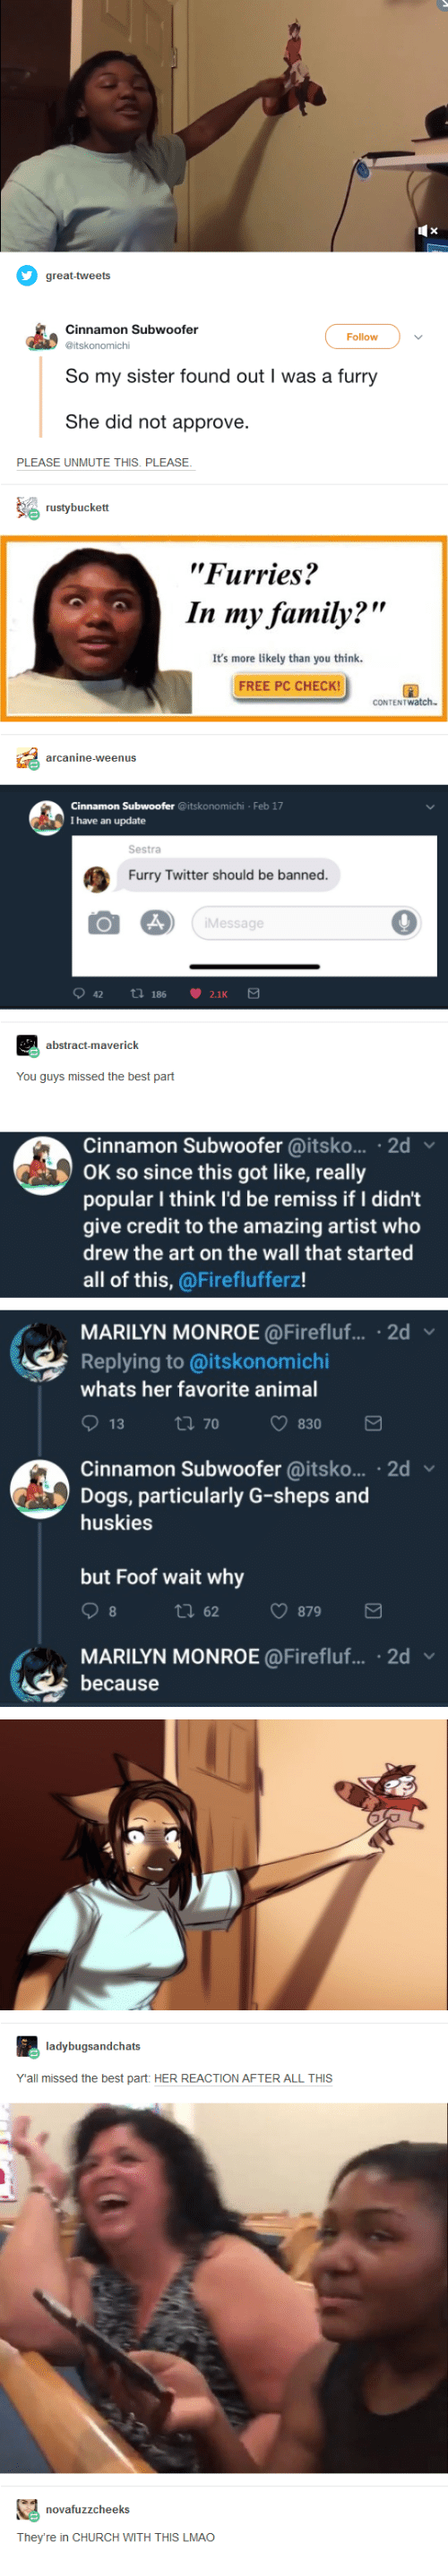 "Church, Dogs, and Family: Follow  So my sister found out I was a furry  She did not approve  PLEASE UNMUTE THIS. PLEASE  ""Furries?  In my family?""  It's more likely than you think  FREE PC CHECK  Feb 17  I have an update  Sestra  Furry Twitter should be banned.  Message  You guys missed the best part  Cinnamon Subwoofer @itsko... 2d  OK so since this got like, really  popular I think l'd be remiss if I didn't  give credit to the amazing artist who  drew the art on the wall that started  all of this, @Fireflufferz!  MARILYN MONROE@Firefluf.... 2d  Replying to @itskonomichi  whats her favorite anima  Cinnamon Subwoofer @itsko... 2d  Dogs, particularly G-sheps and  huskies  but Foof wait why  tl 62 879  MARILYN MONROE @Firefluf... 2d v  because  Yall missed the best part: HER REACTION AFTER ALL THIS  They're in CHURCH WITH THIS LMAO"